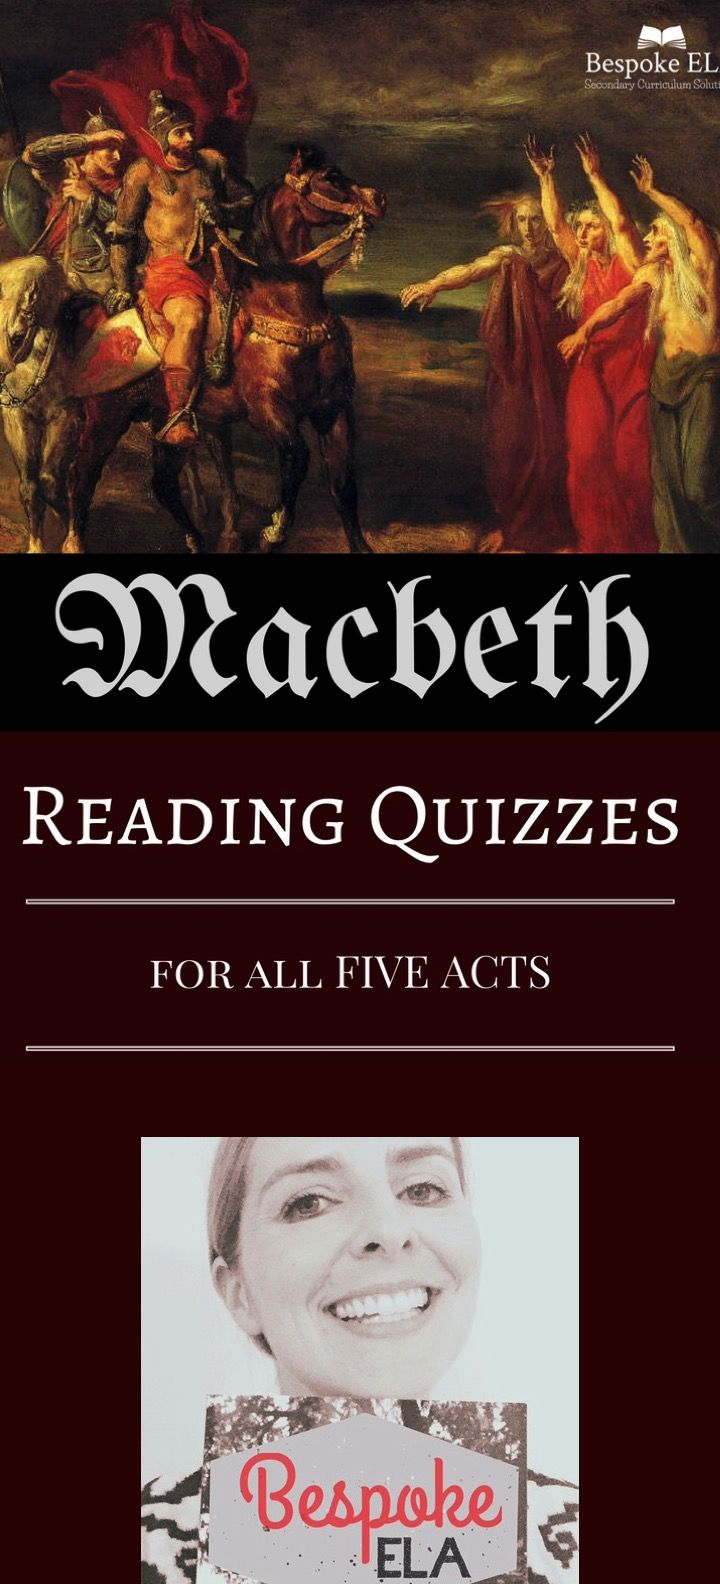 macbeth reading quizzes answer keys comprehension bespoke this product by bespoke ela contains five reading quizzes for all five acts of shakespeare s tragedy